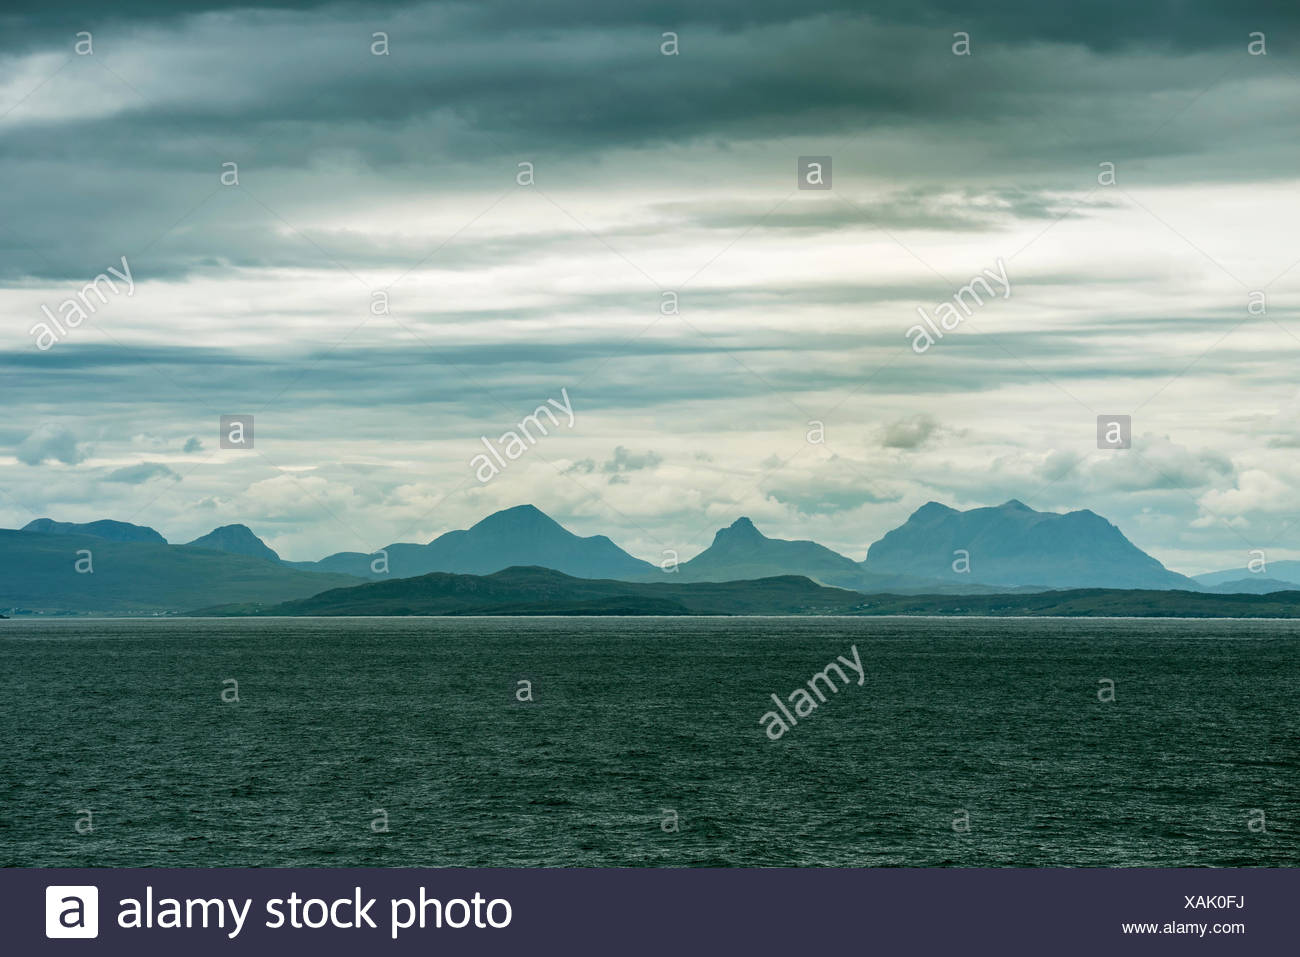 Bay Loch Ewe with the striking silhouette of the Northwest Highlands, Ross and Cromarty, Scotland, United Kingdom - Stock Image